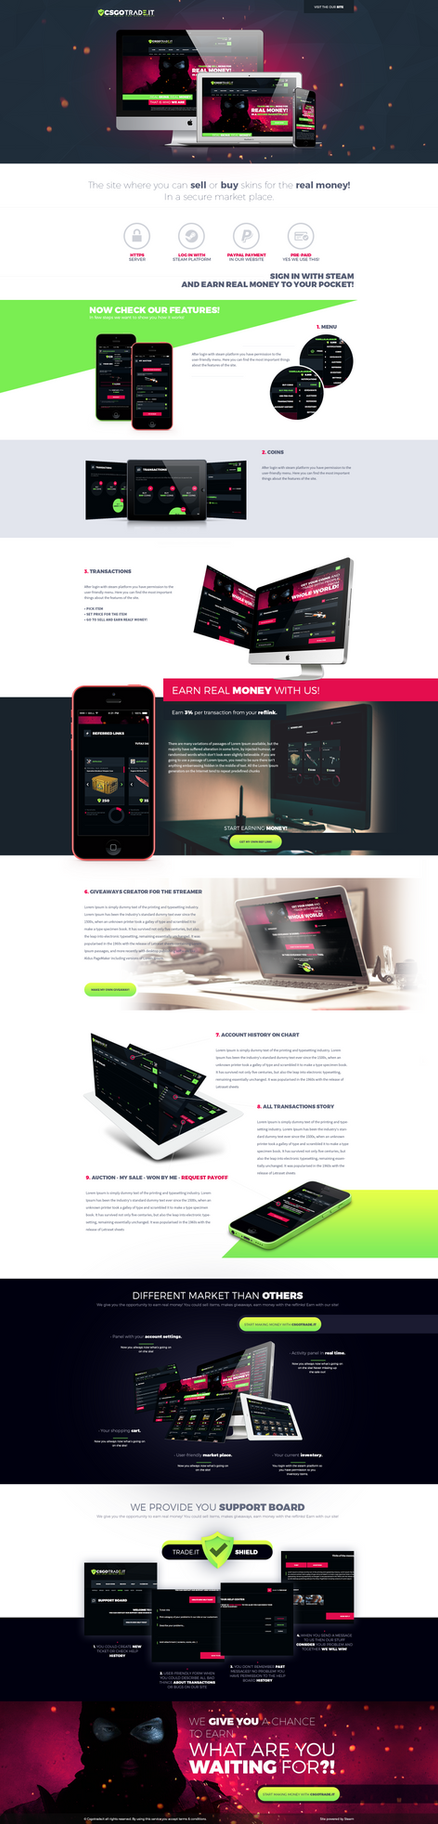 Landingpage about CSGOTRADE.IT/about by trkwebdesign on ...